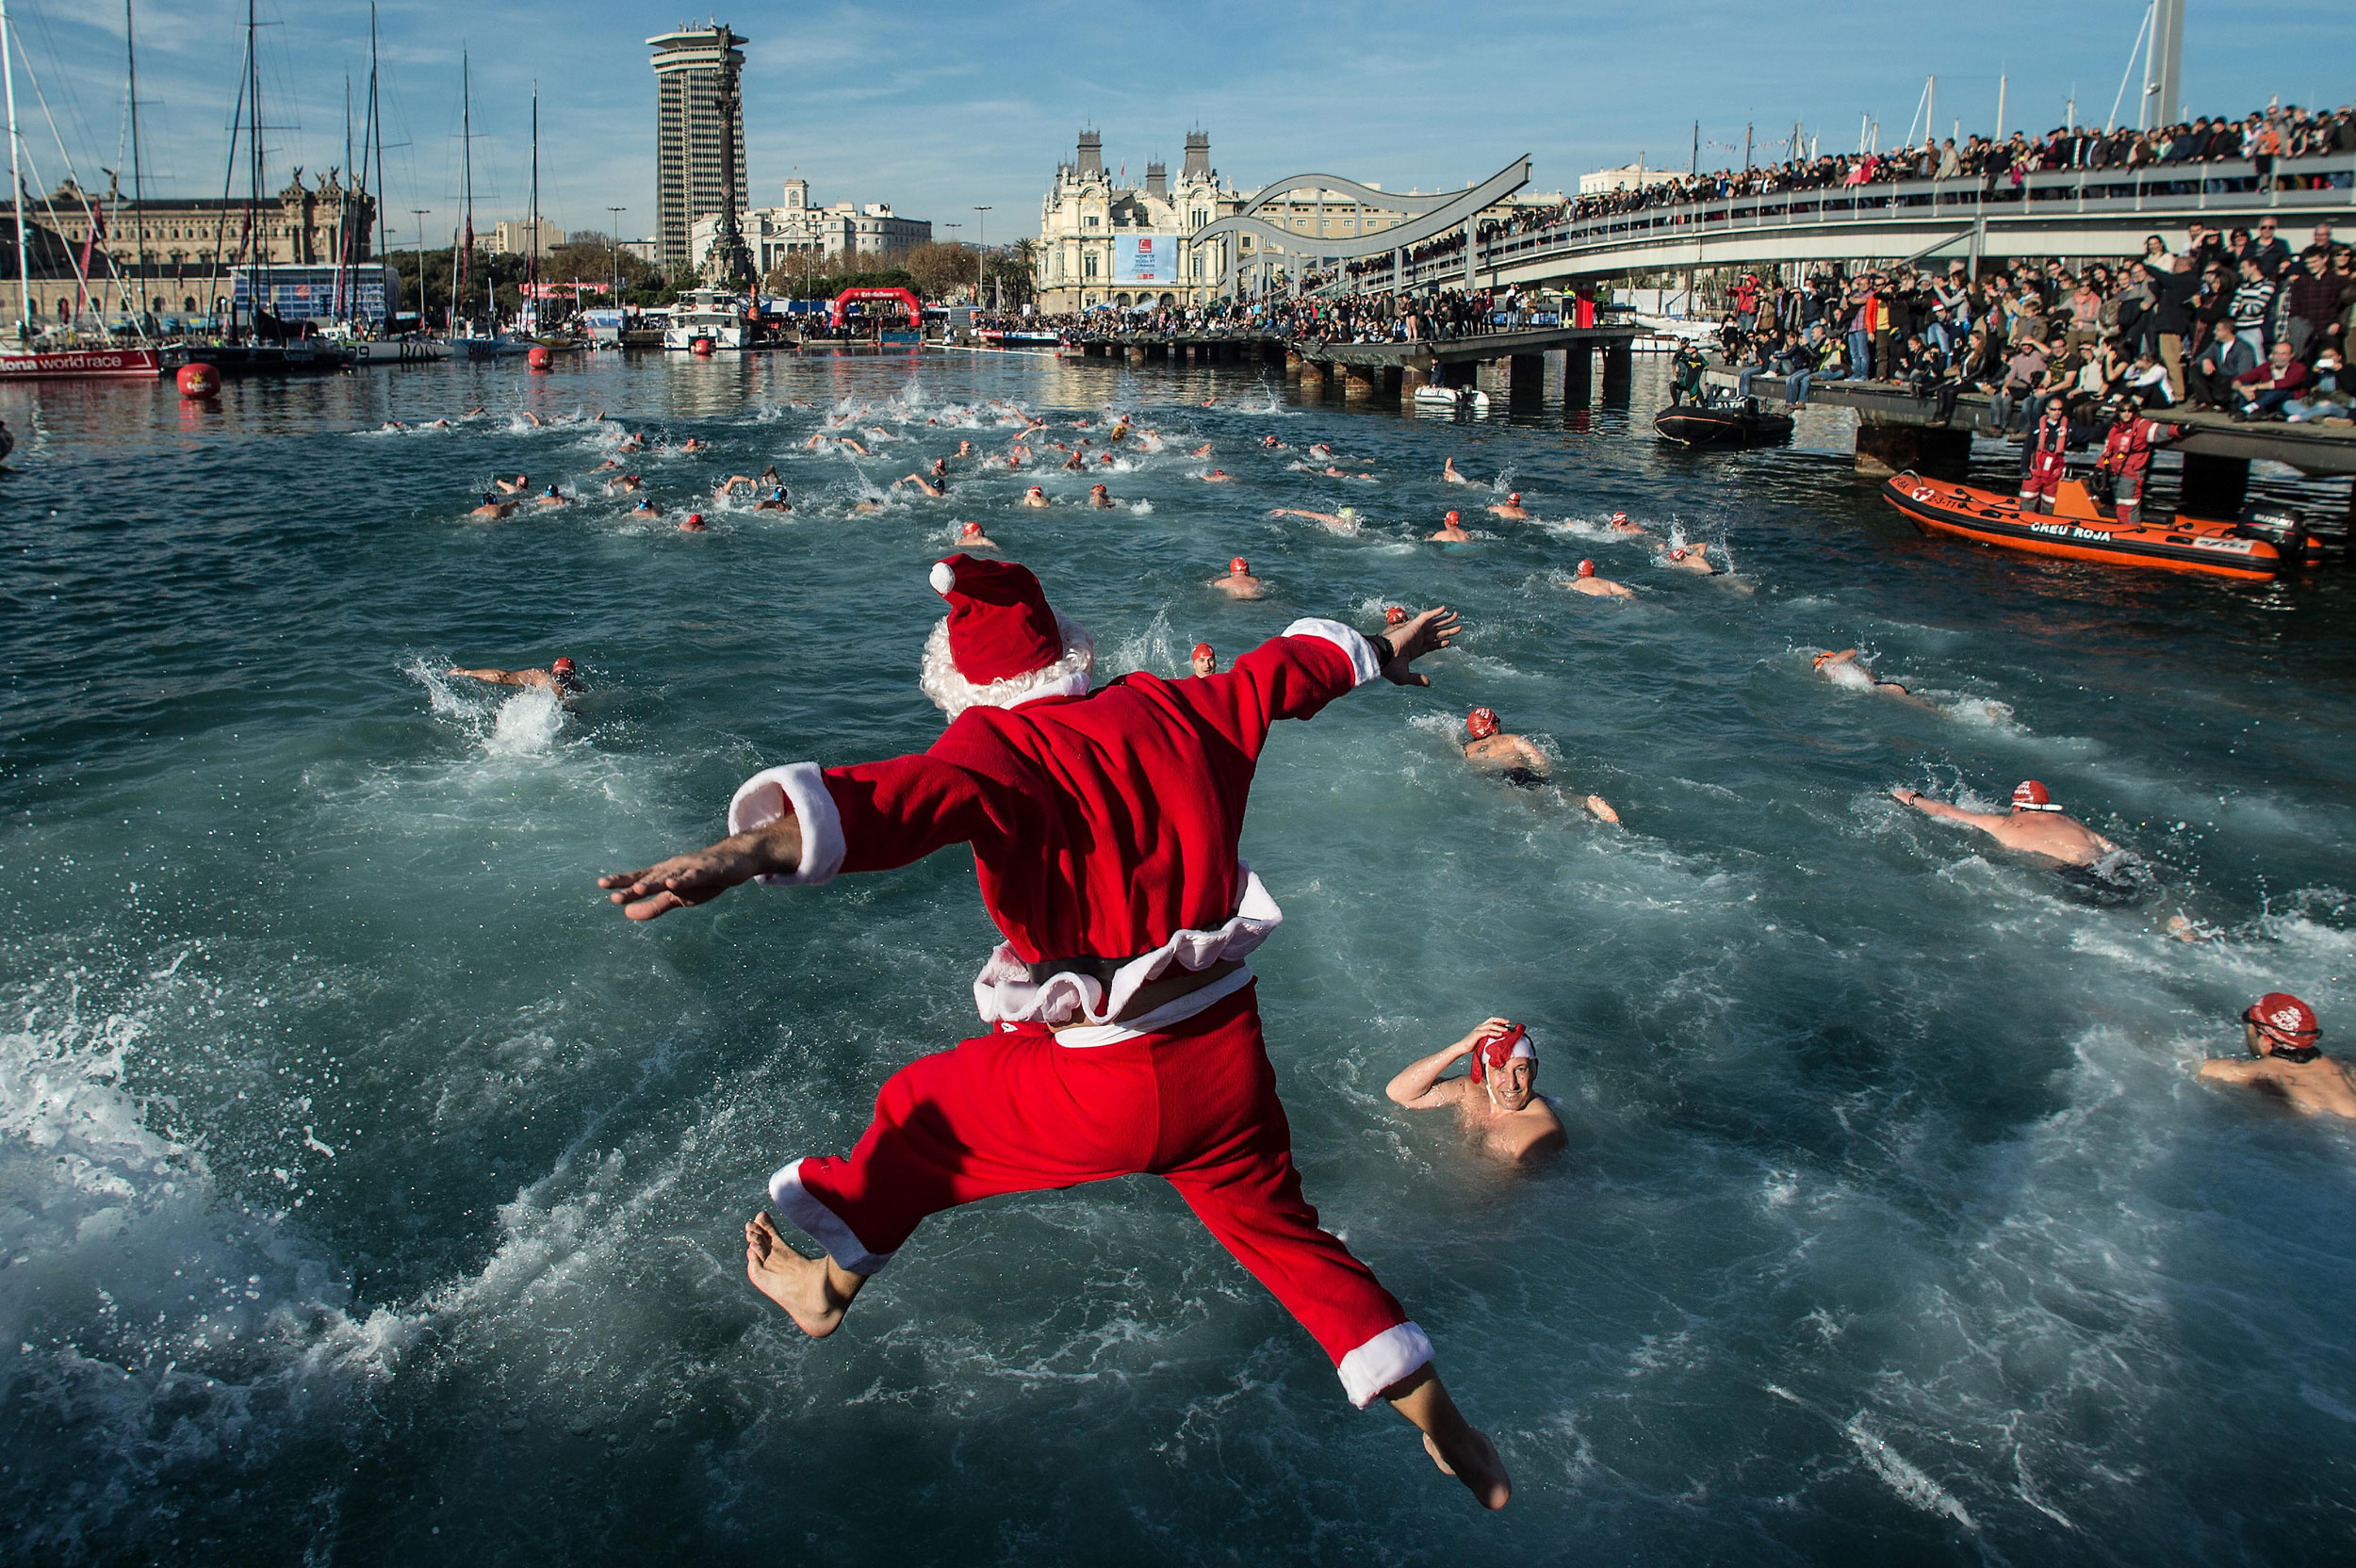 A competitor in Christmas fancy dress jumps into the sea during the 105th Barcelona Traditional Christmas Swimming Cup at the Old Harbour of Barcelona on Dec. 25, 2014 in Barcelona. The Copa Nadal is organised by the Barcelona Swimming Club and involves competitors swimming across some 200 metres of water in the harbour.